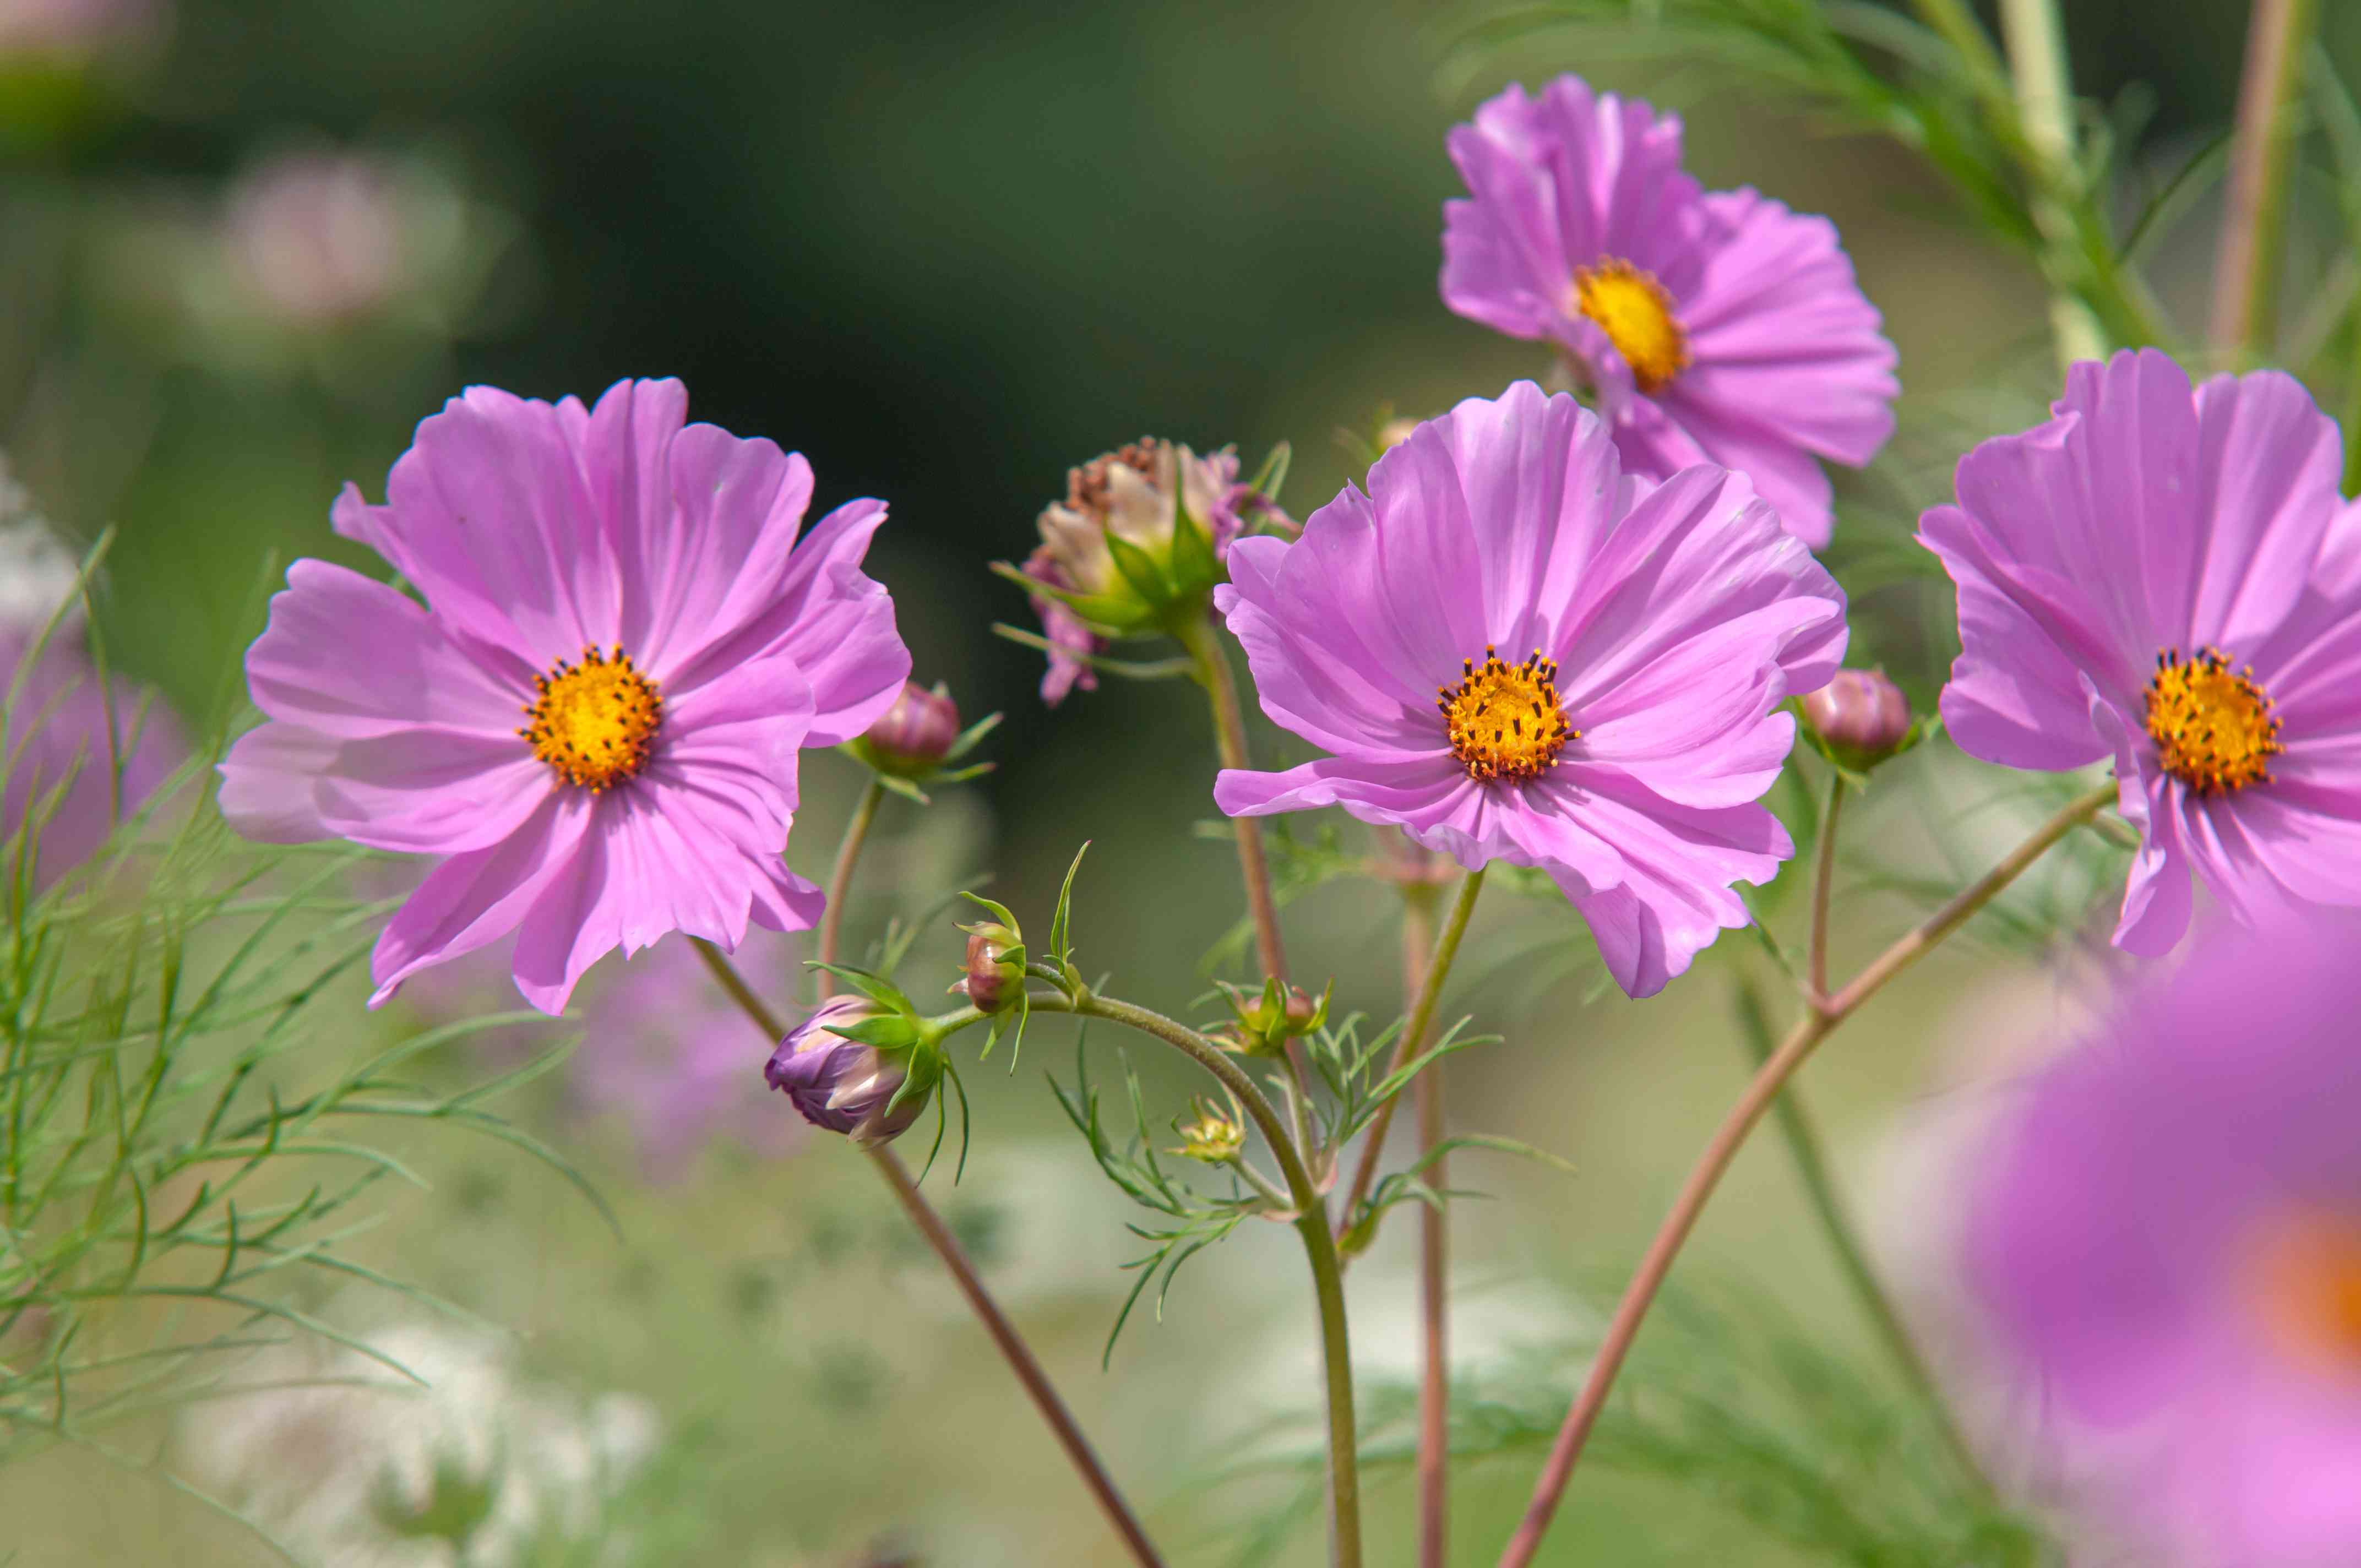 Pink cosmos flowers with yellow centers and buds on thin stems closeup